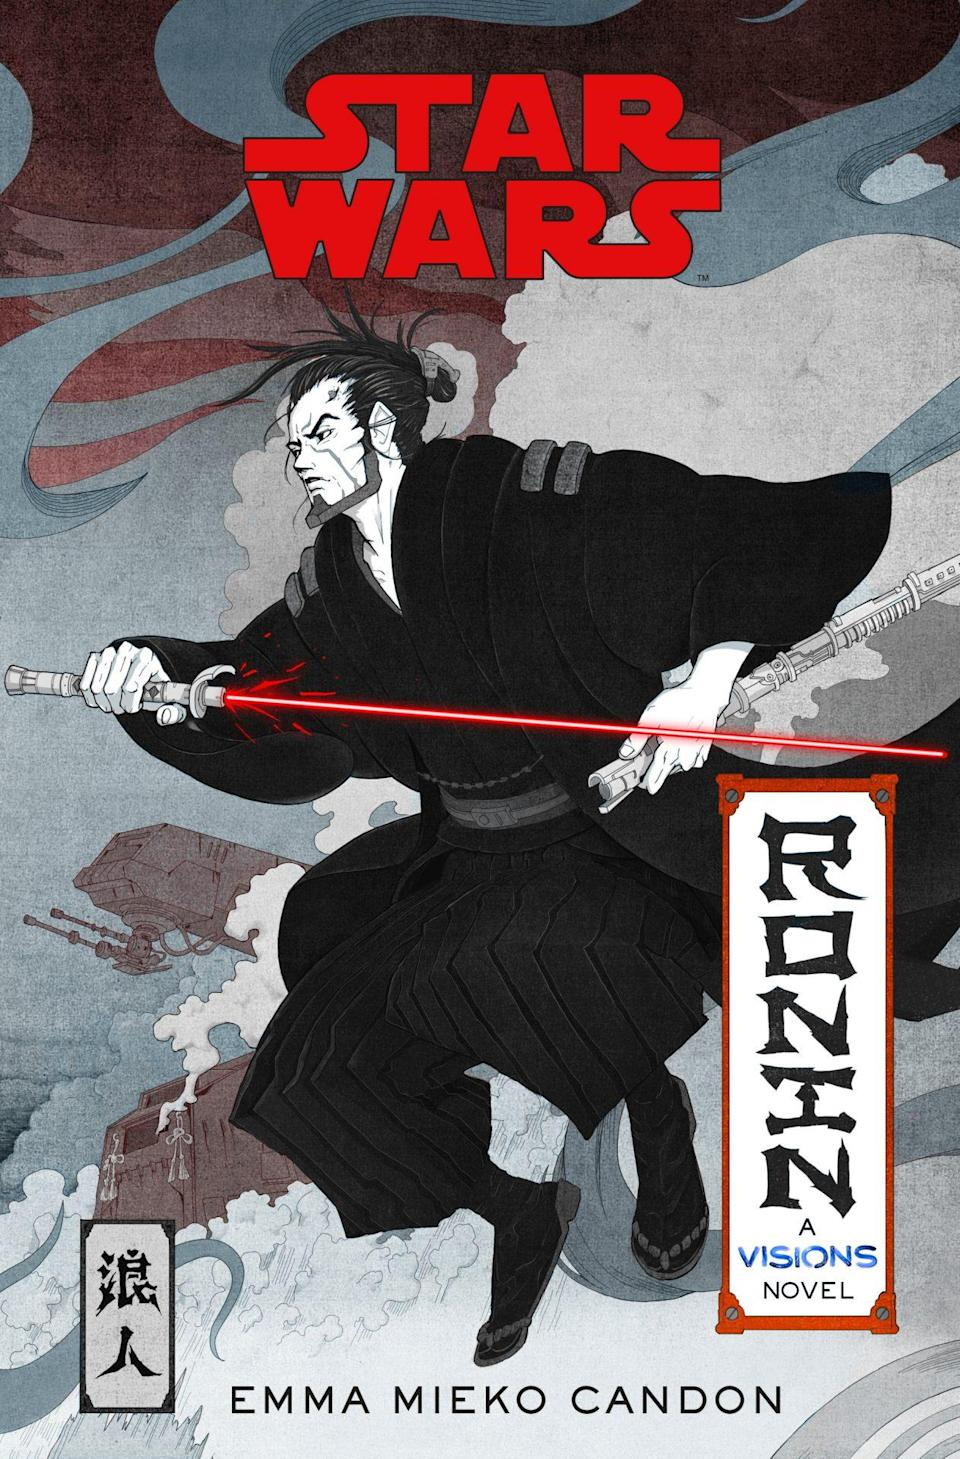 An anime style Sith in black robes with a red lightsaber on the cover of Star Wars Visions: Ronin